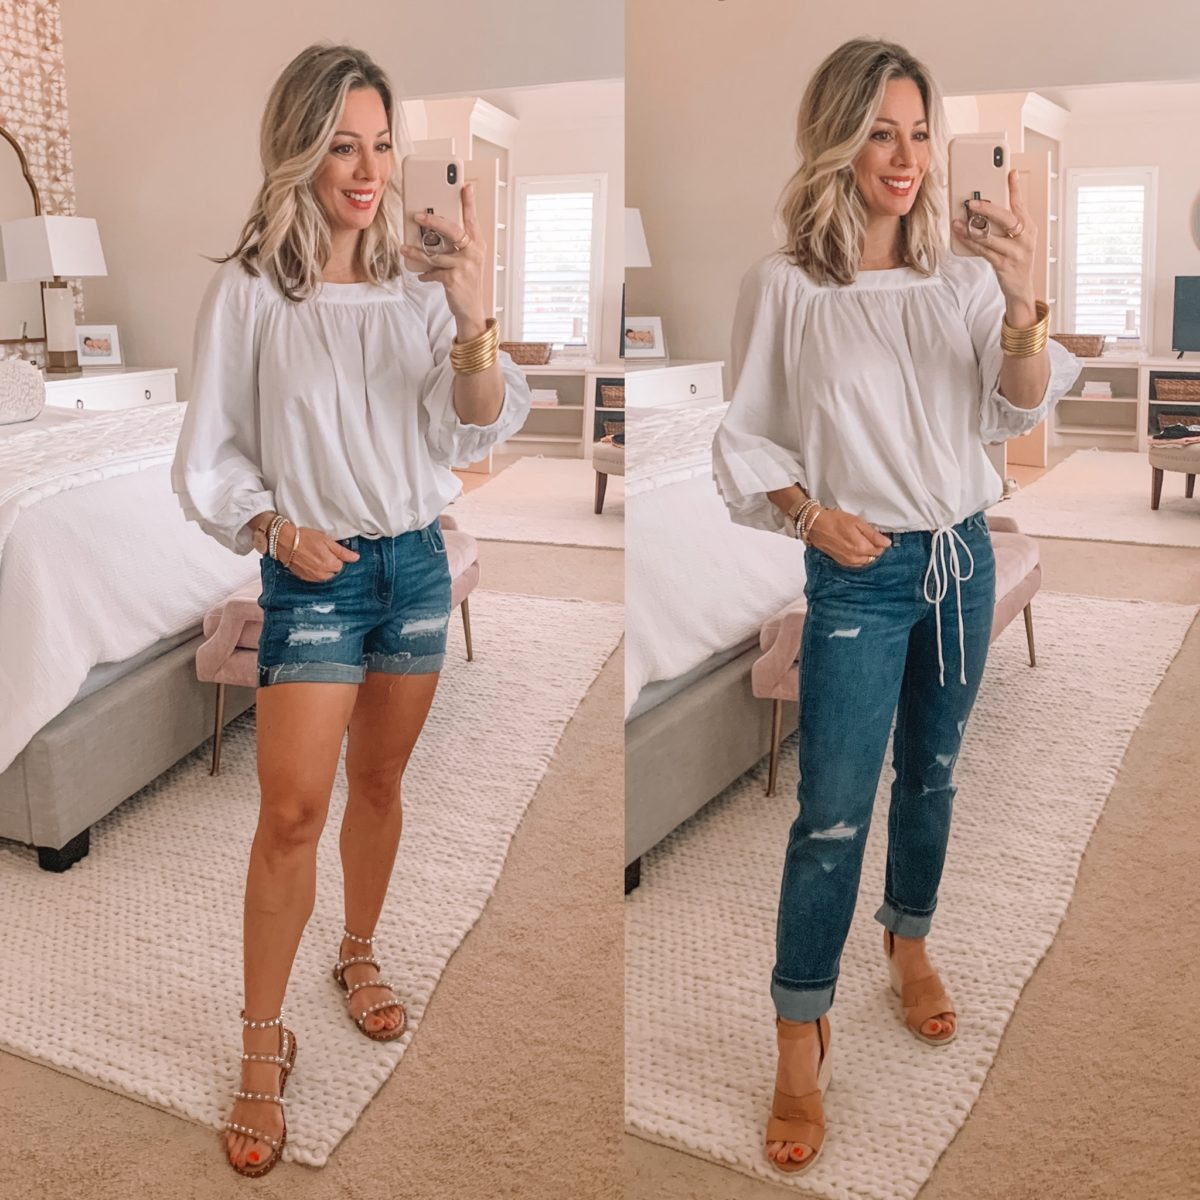 Dressing Room Finds Old Navy and Target, Peasant Top, Distressed Shorts, Distressed Jeans, Sandals